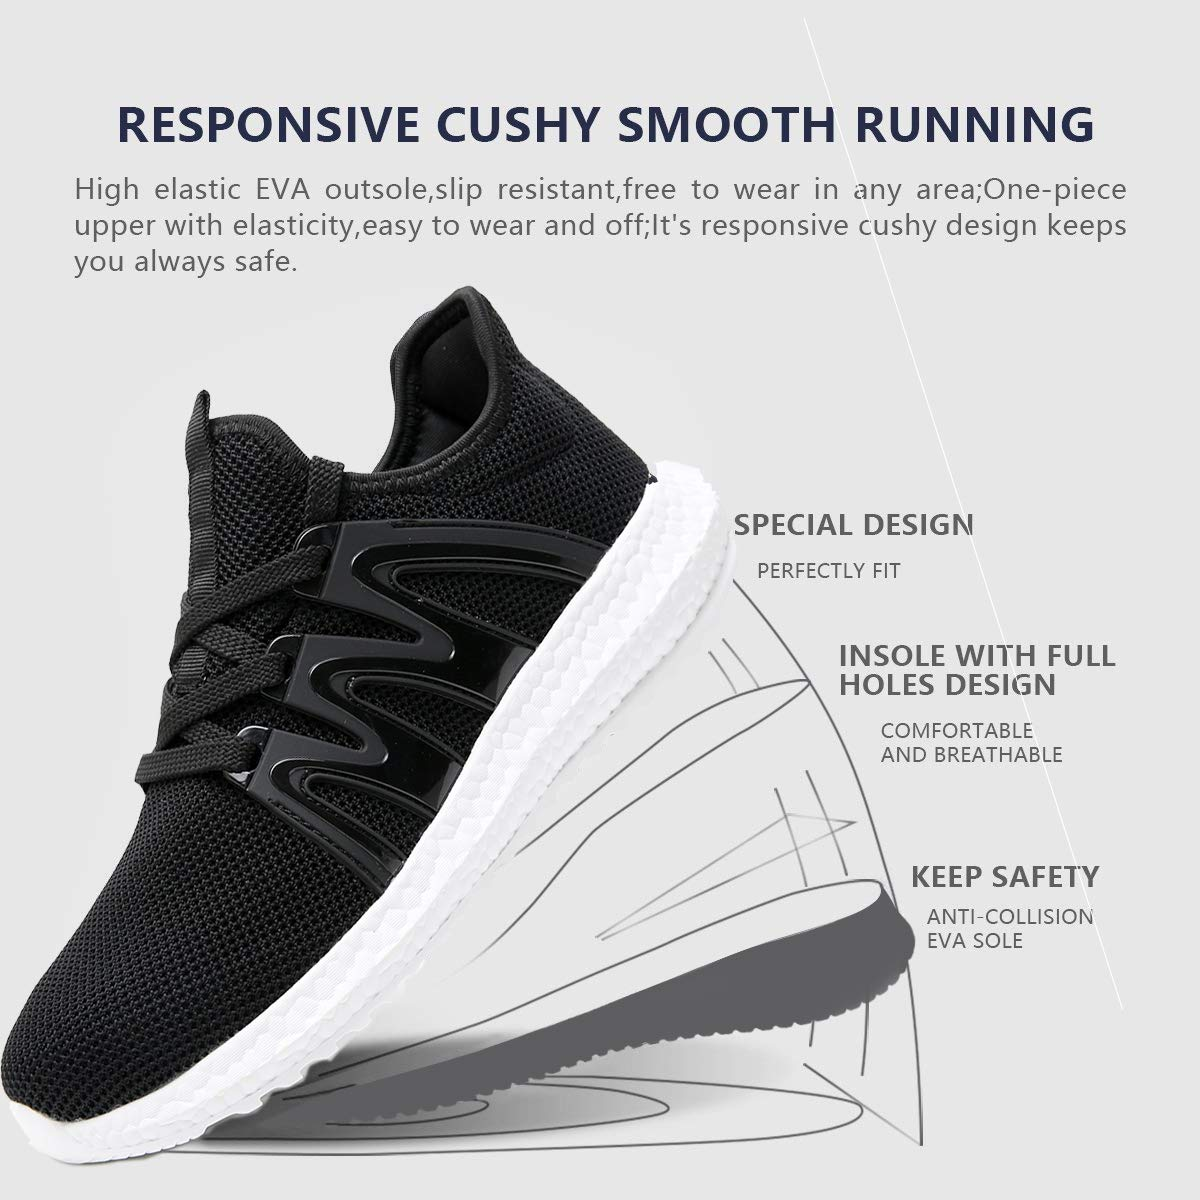 Azooken Mens Tennis Shoes Athletic Running Shoes Comfortable Walking Shoes Lightweight Casual Shoes Sports Sneakers for Men